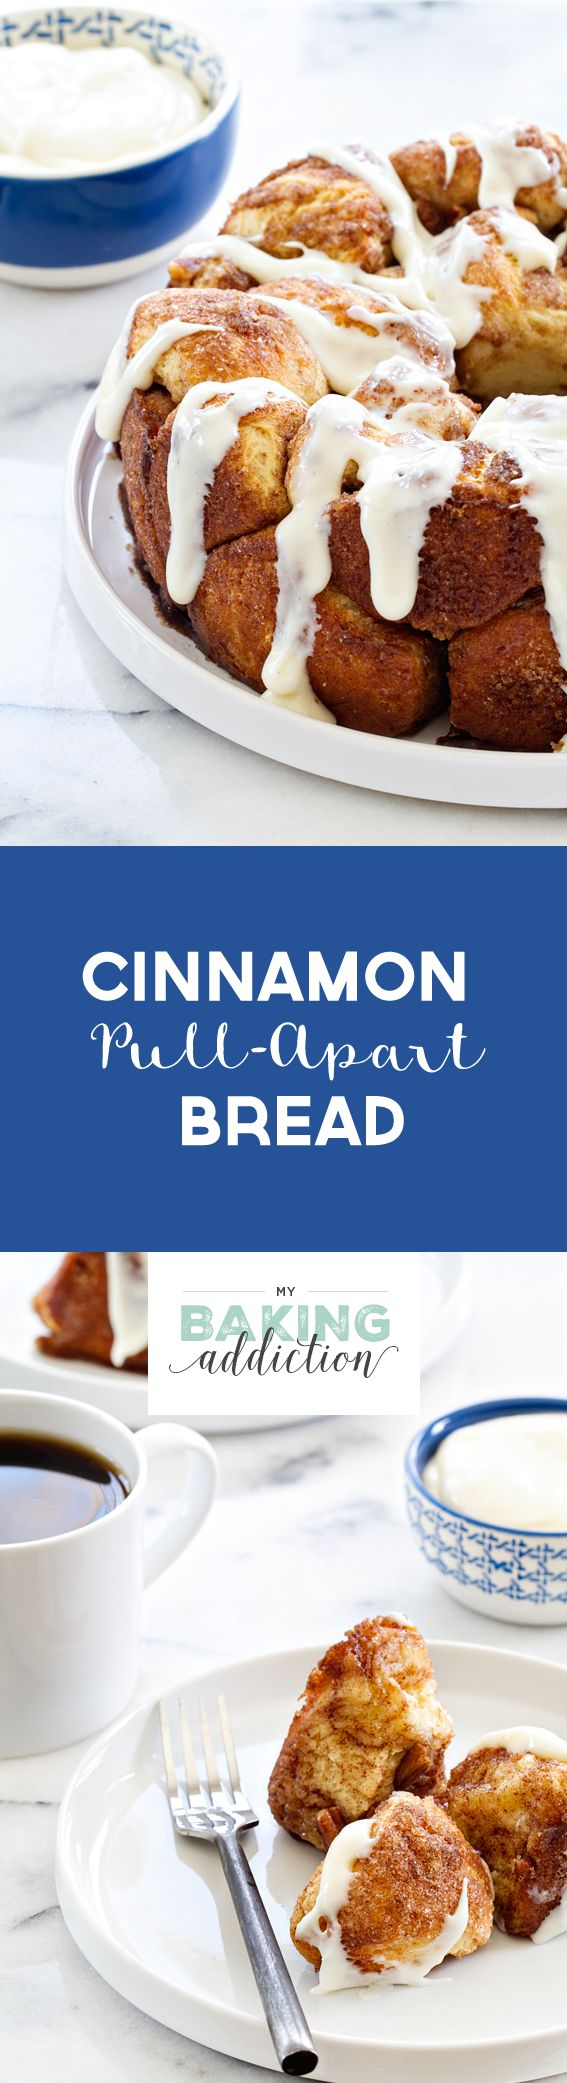 1000+ images about FOOD on Pinterest | Leftover turkey soup, Pizza and ...